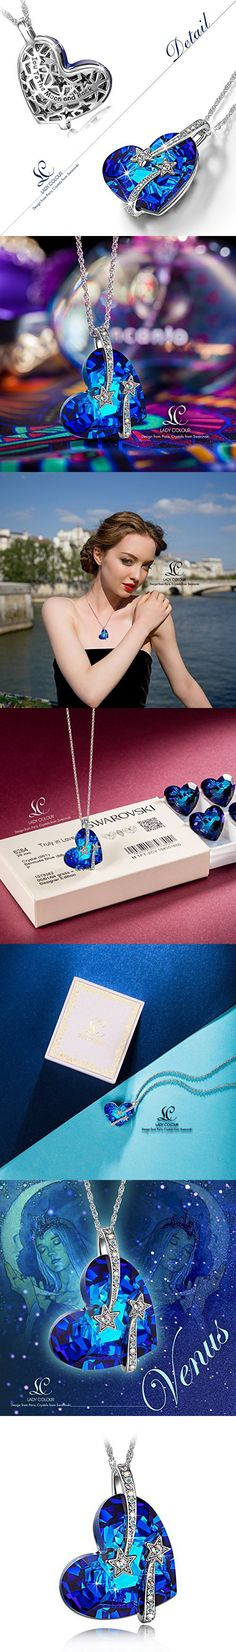 "LadyColour ""Venus"" Heart Sapphire Pendant Necklace, Made With Swarovski Crystals, Women Fashion Heart Jewelry Engraved With ""I Love You To The Moon and Back"", Great Christmas Gifts, Valentines Gift, Birthday Gifts, Anniversary Gifts"